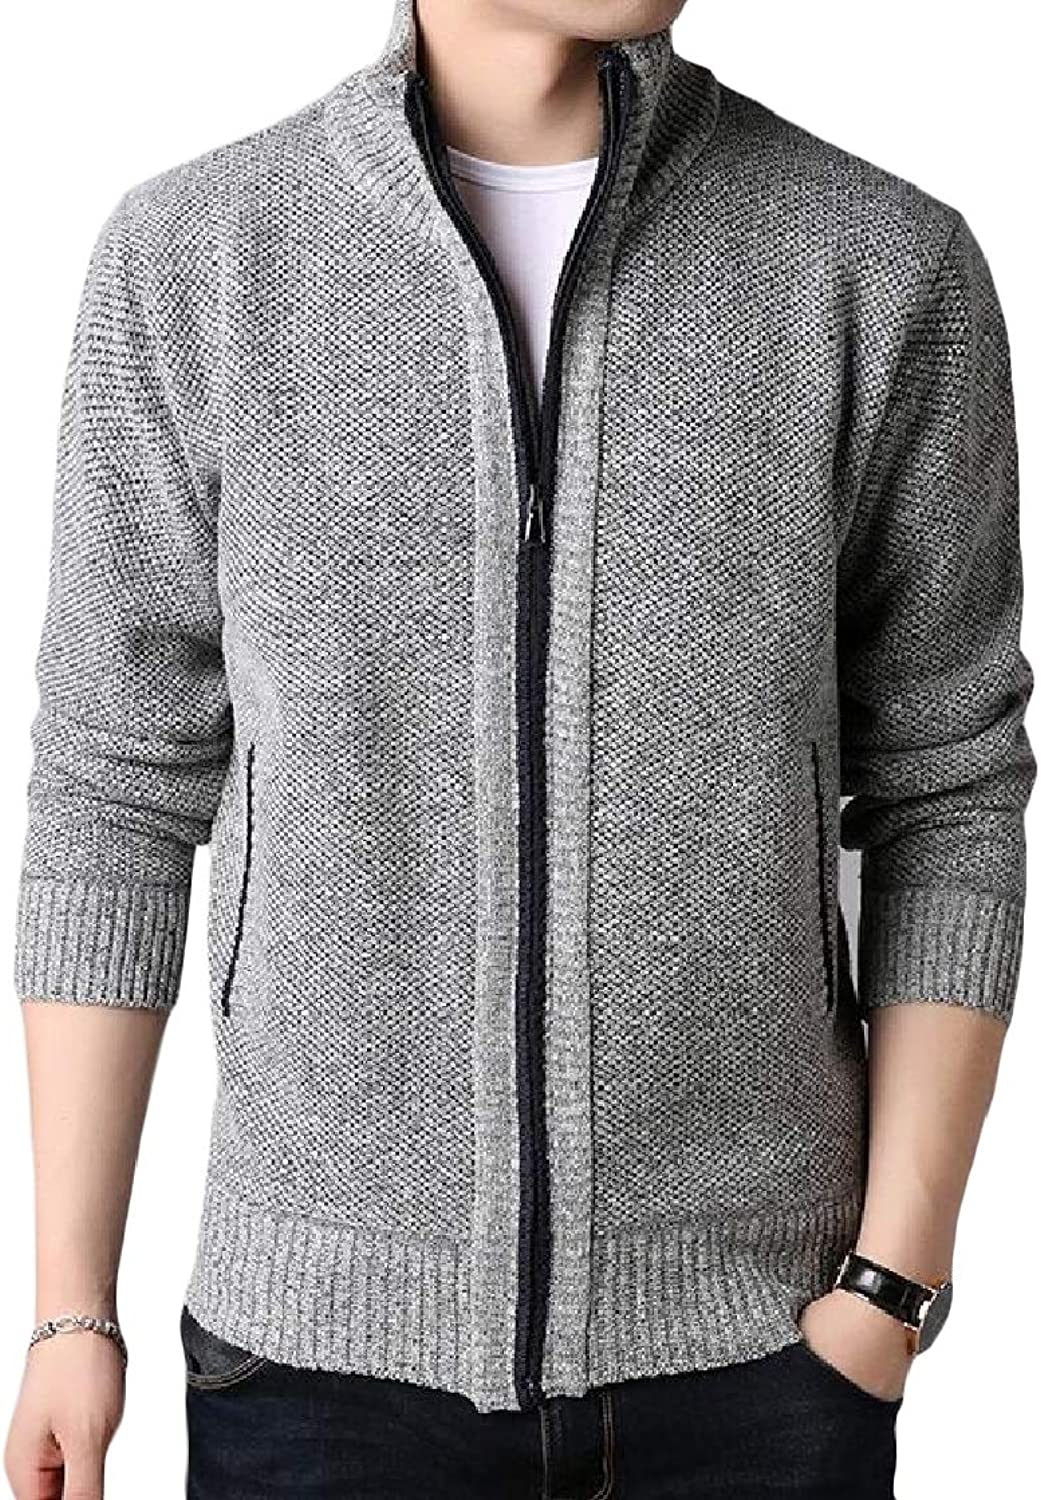 30fd12f1f604 Etecredpow-CA Men Zip-Up Casual Thick Knit Stand Collar Cardigan ...